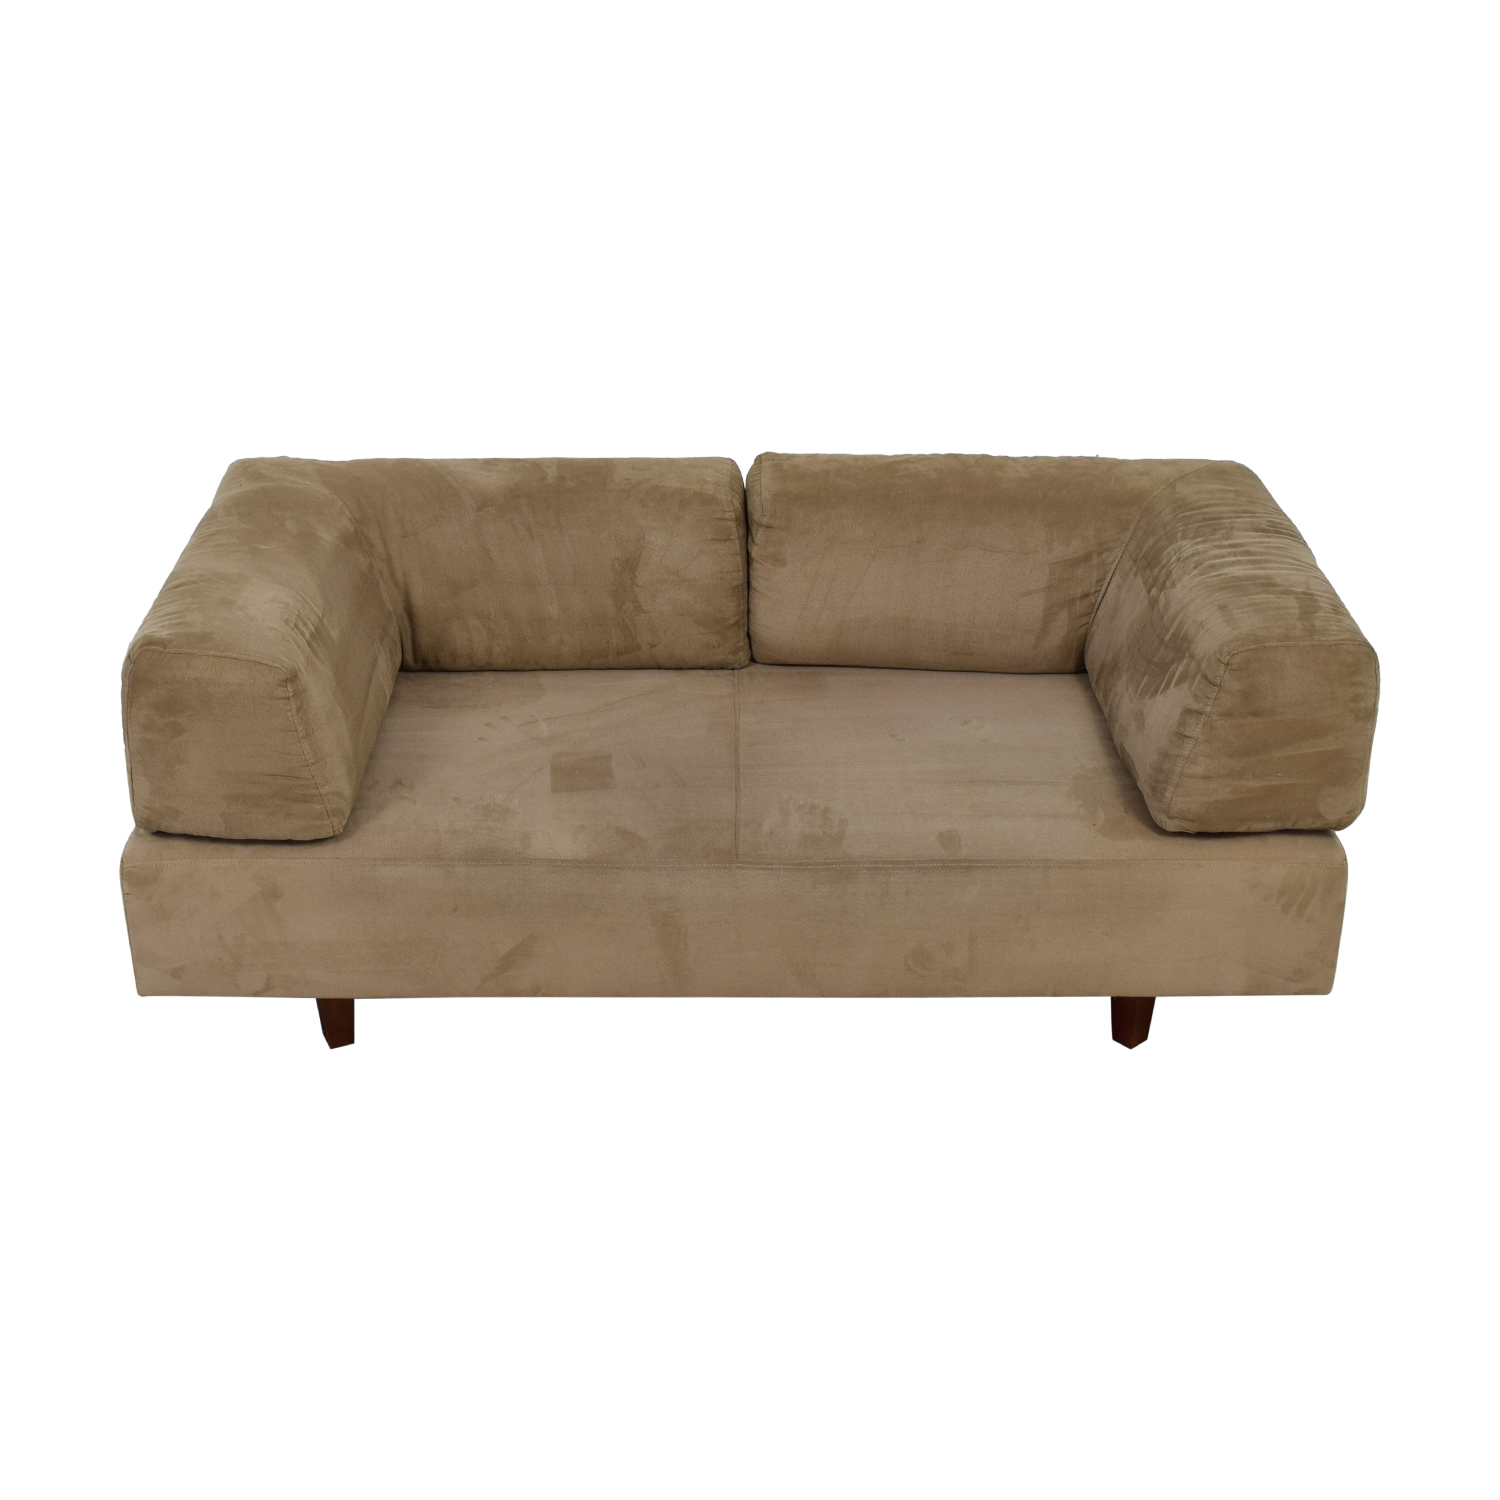 West Elm West Elm Beige Sofa with Removable Back Cushions dimensions